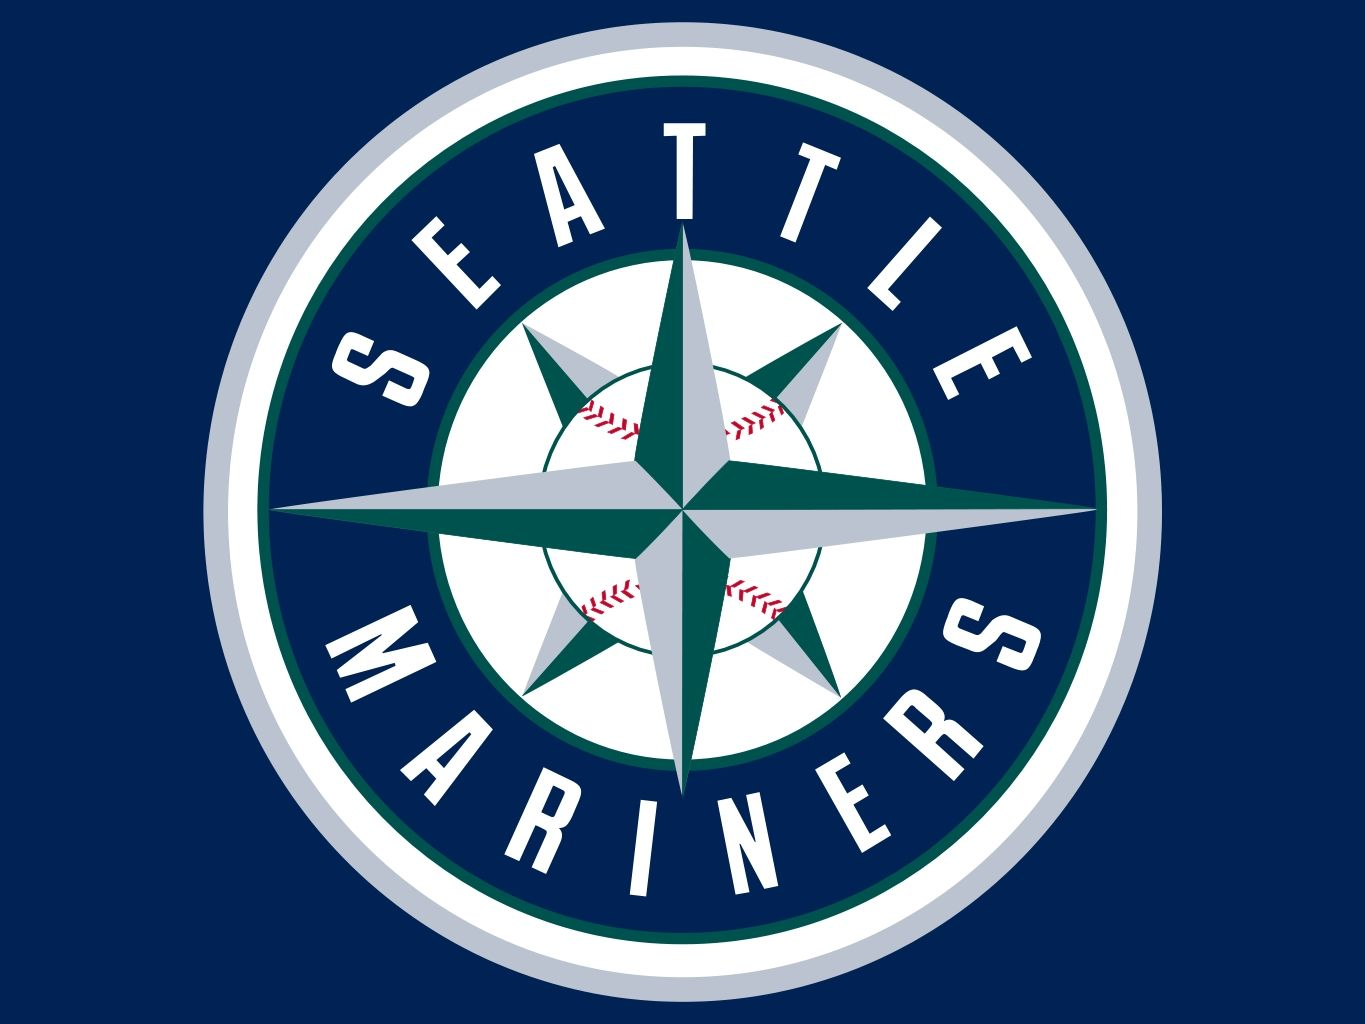 mariners logo images | Seattle Mariners | Mariners ...